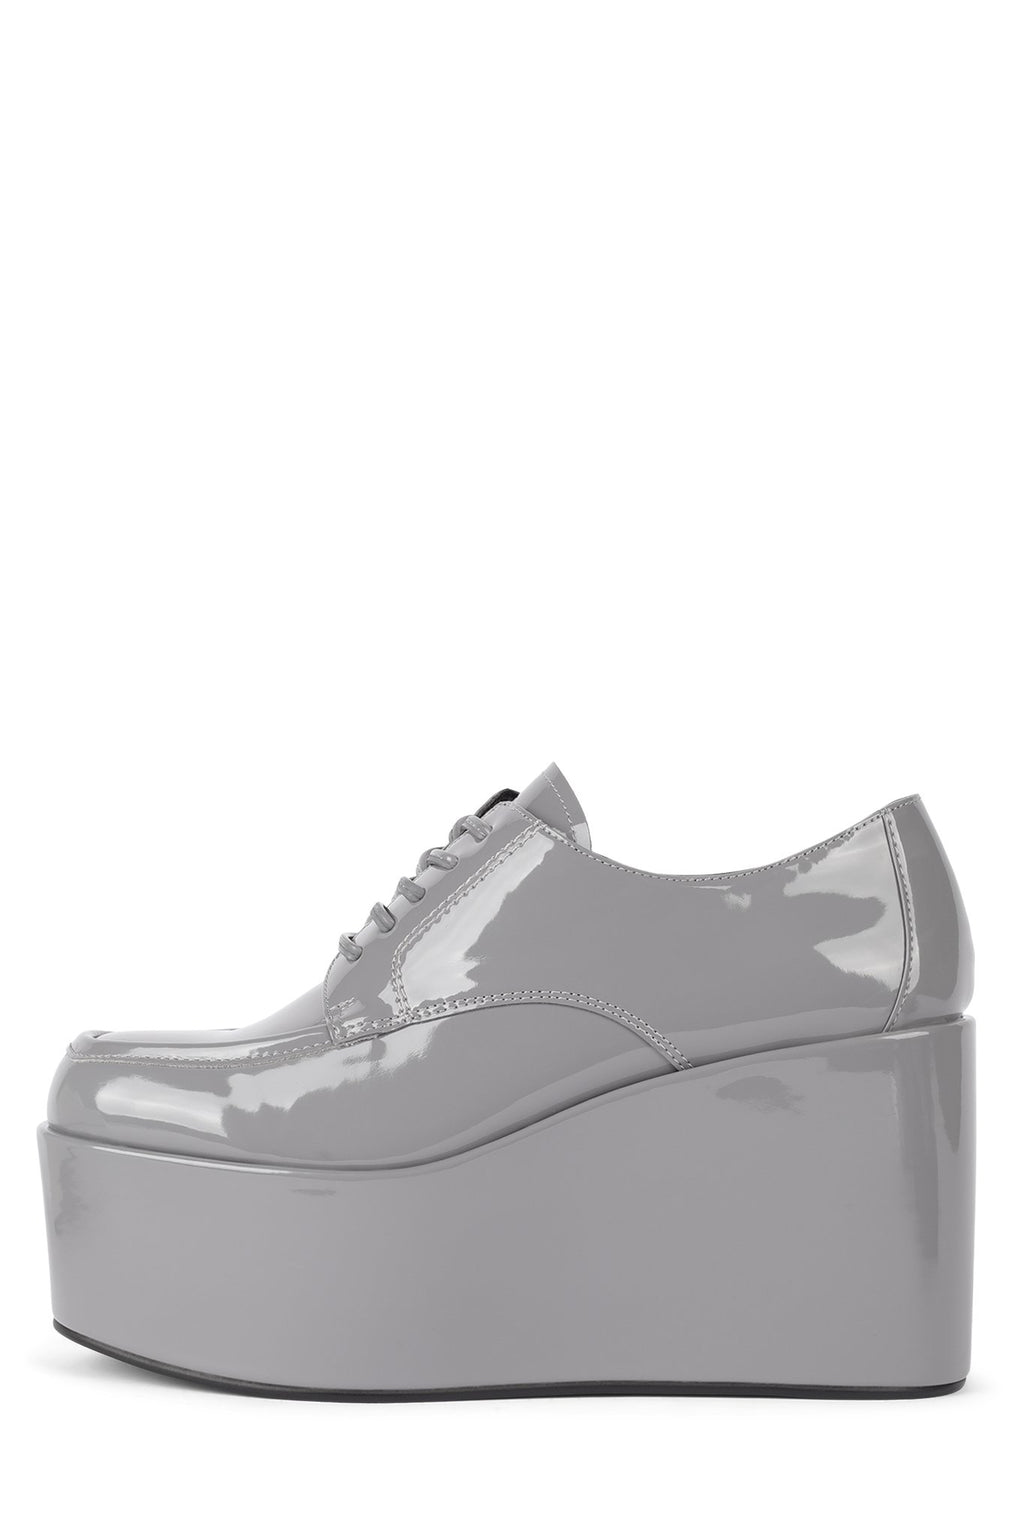 OFFICIELE DV Grey Patent 6